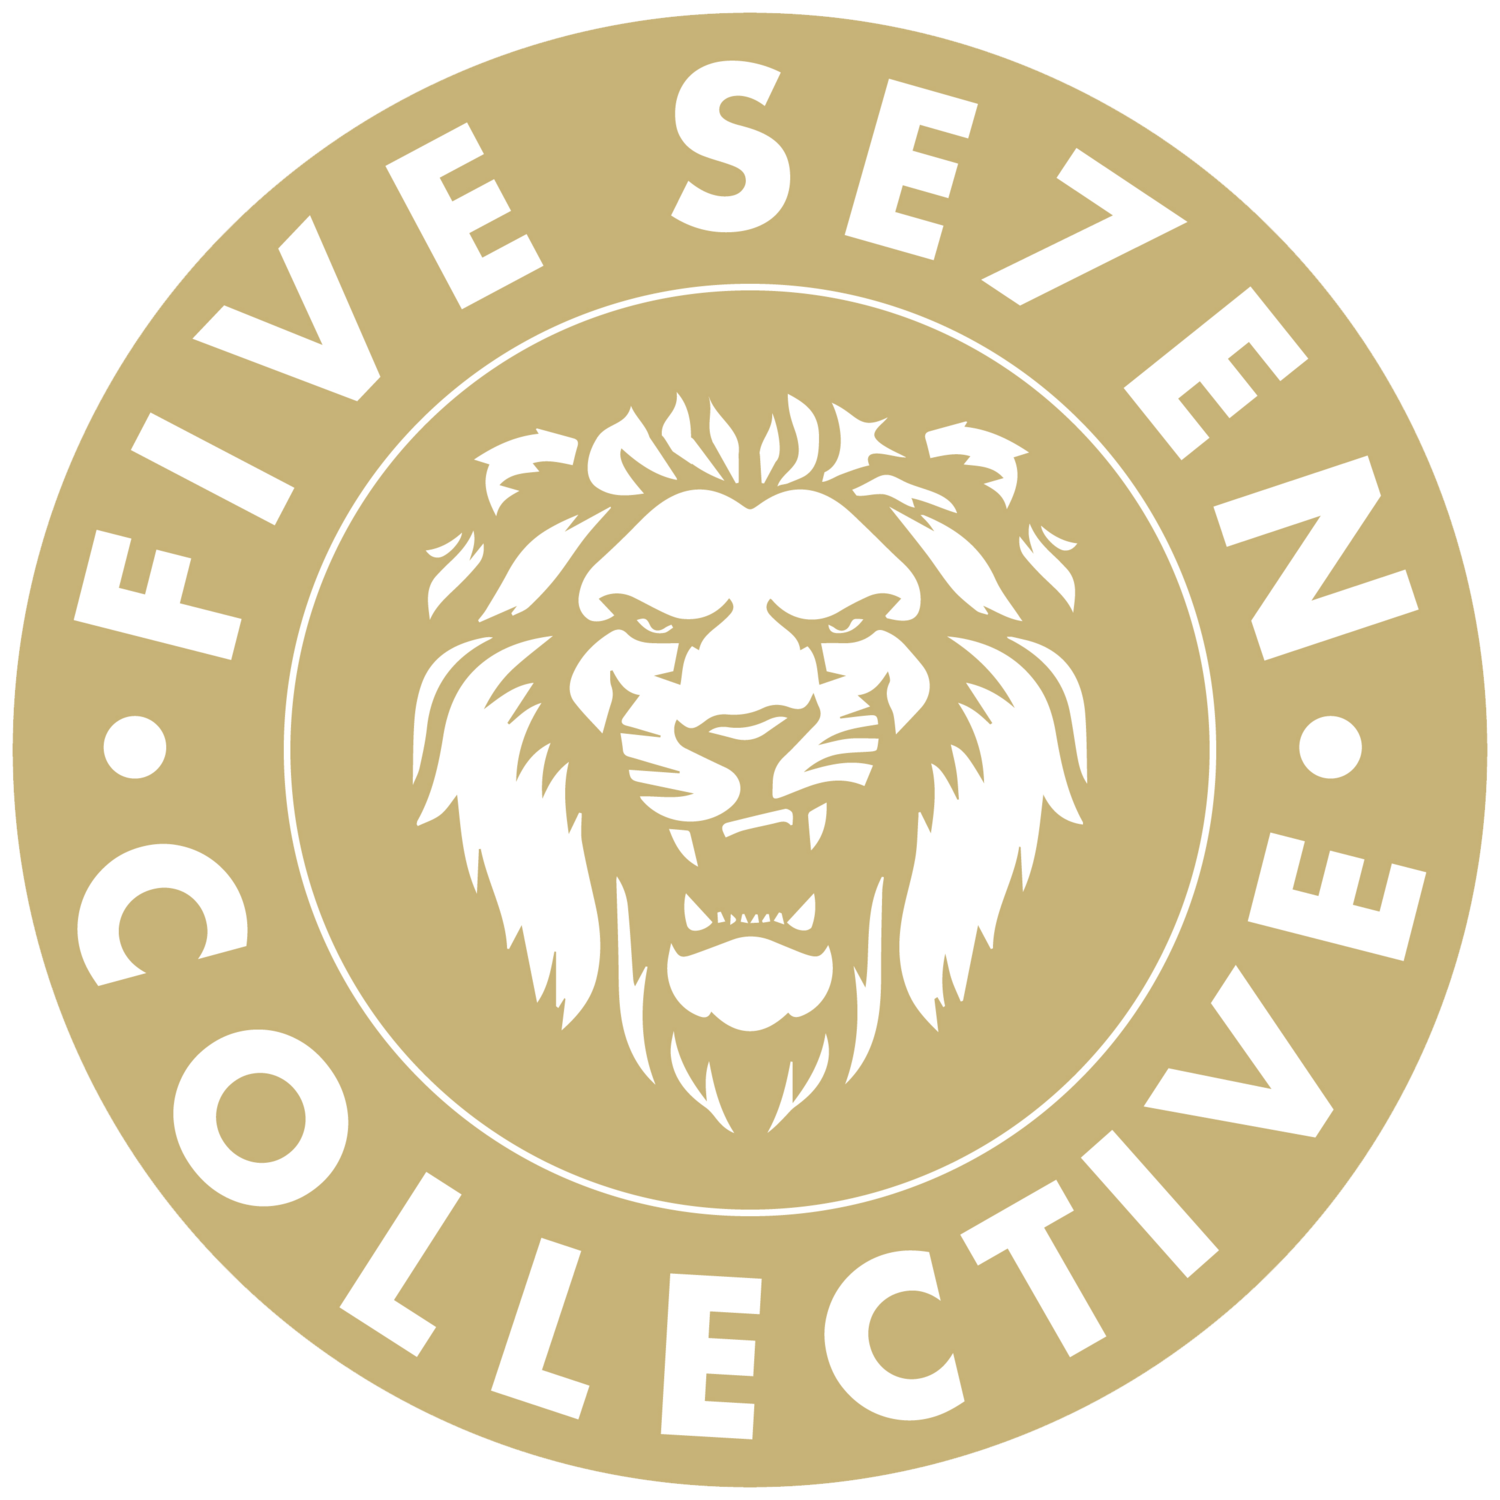 Five Se7en Collective